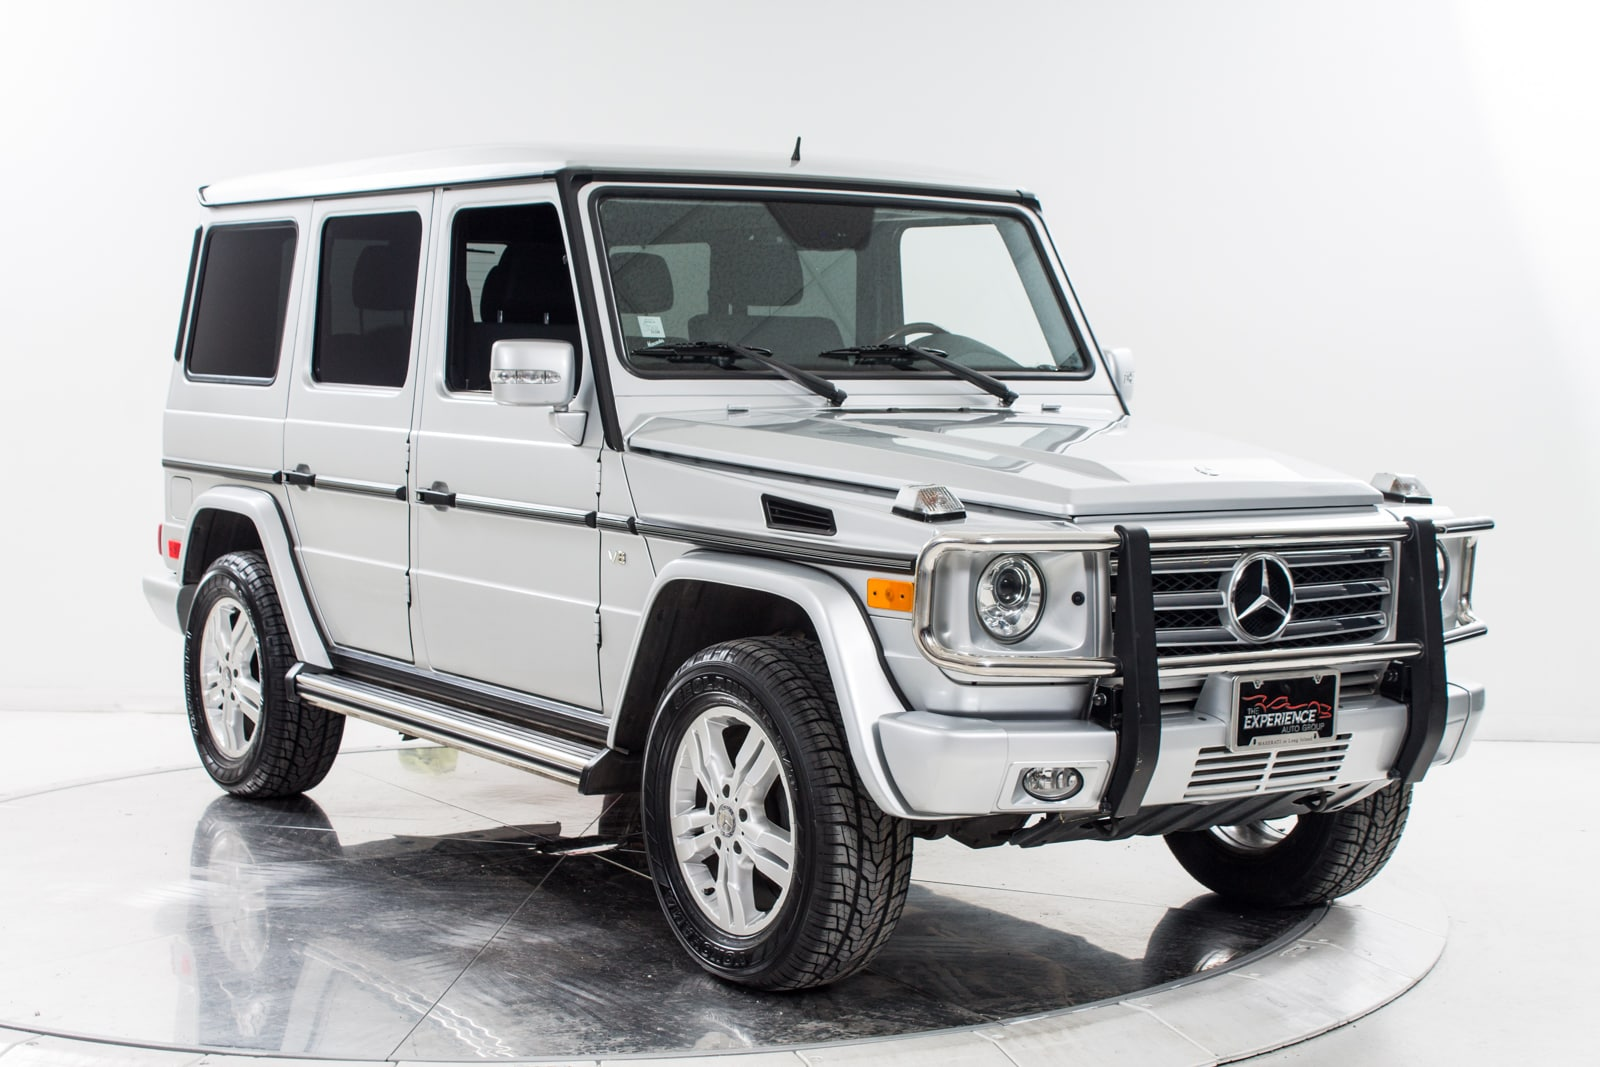 used 2010 mercedes benz g550 for sale plainview near long island ny vin wdcyc3hf6ax183461. Black Bedroom Furniture Sets. Home Design Ideas